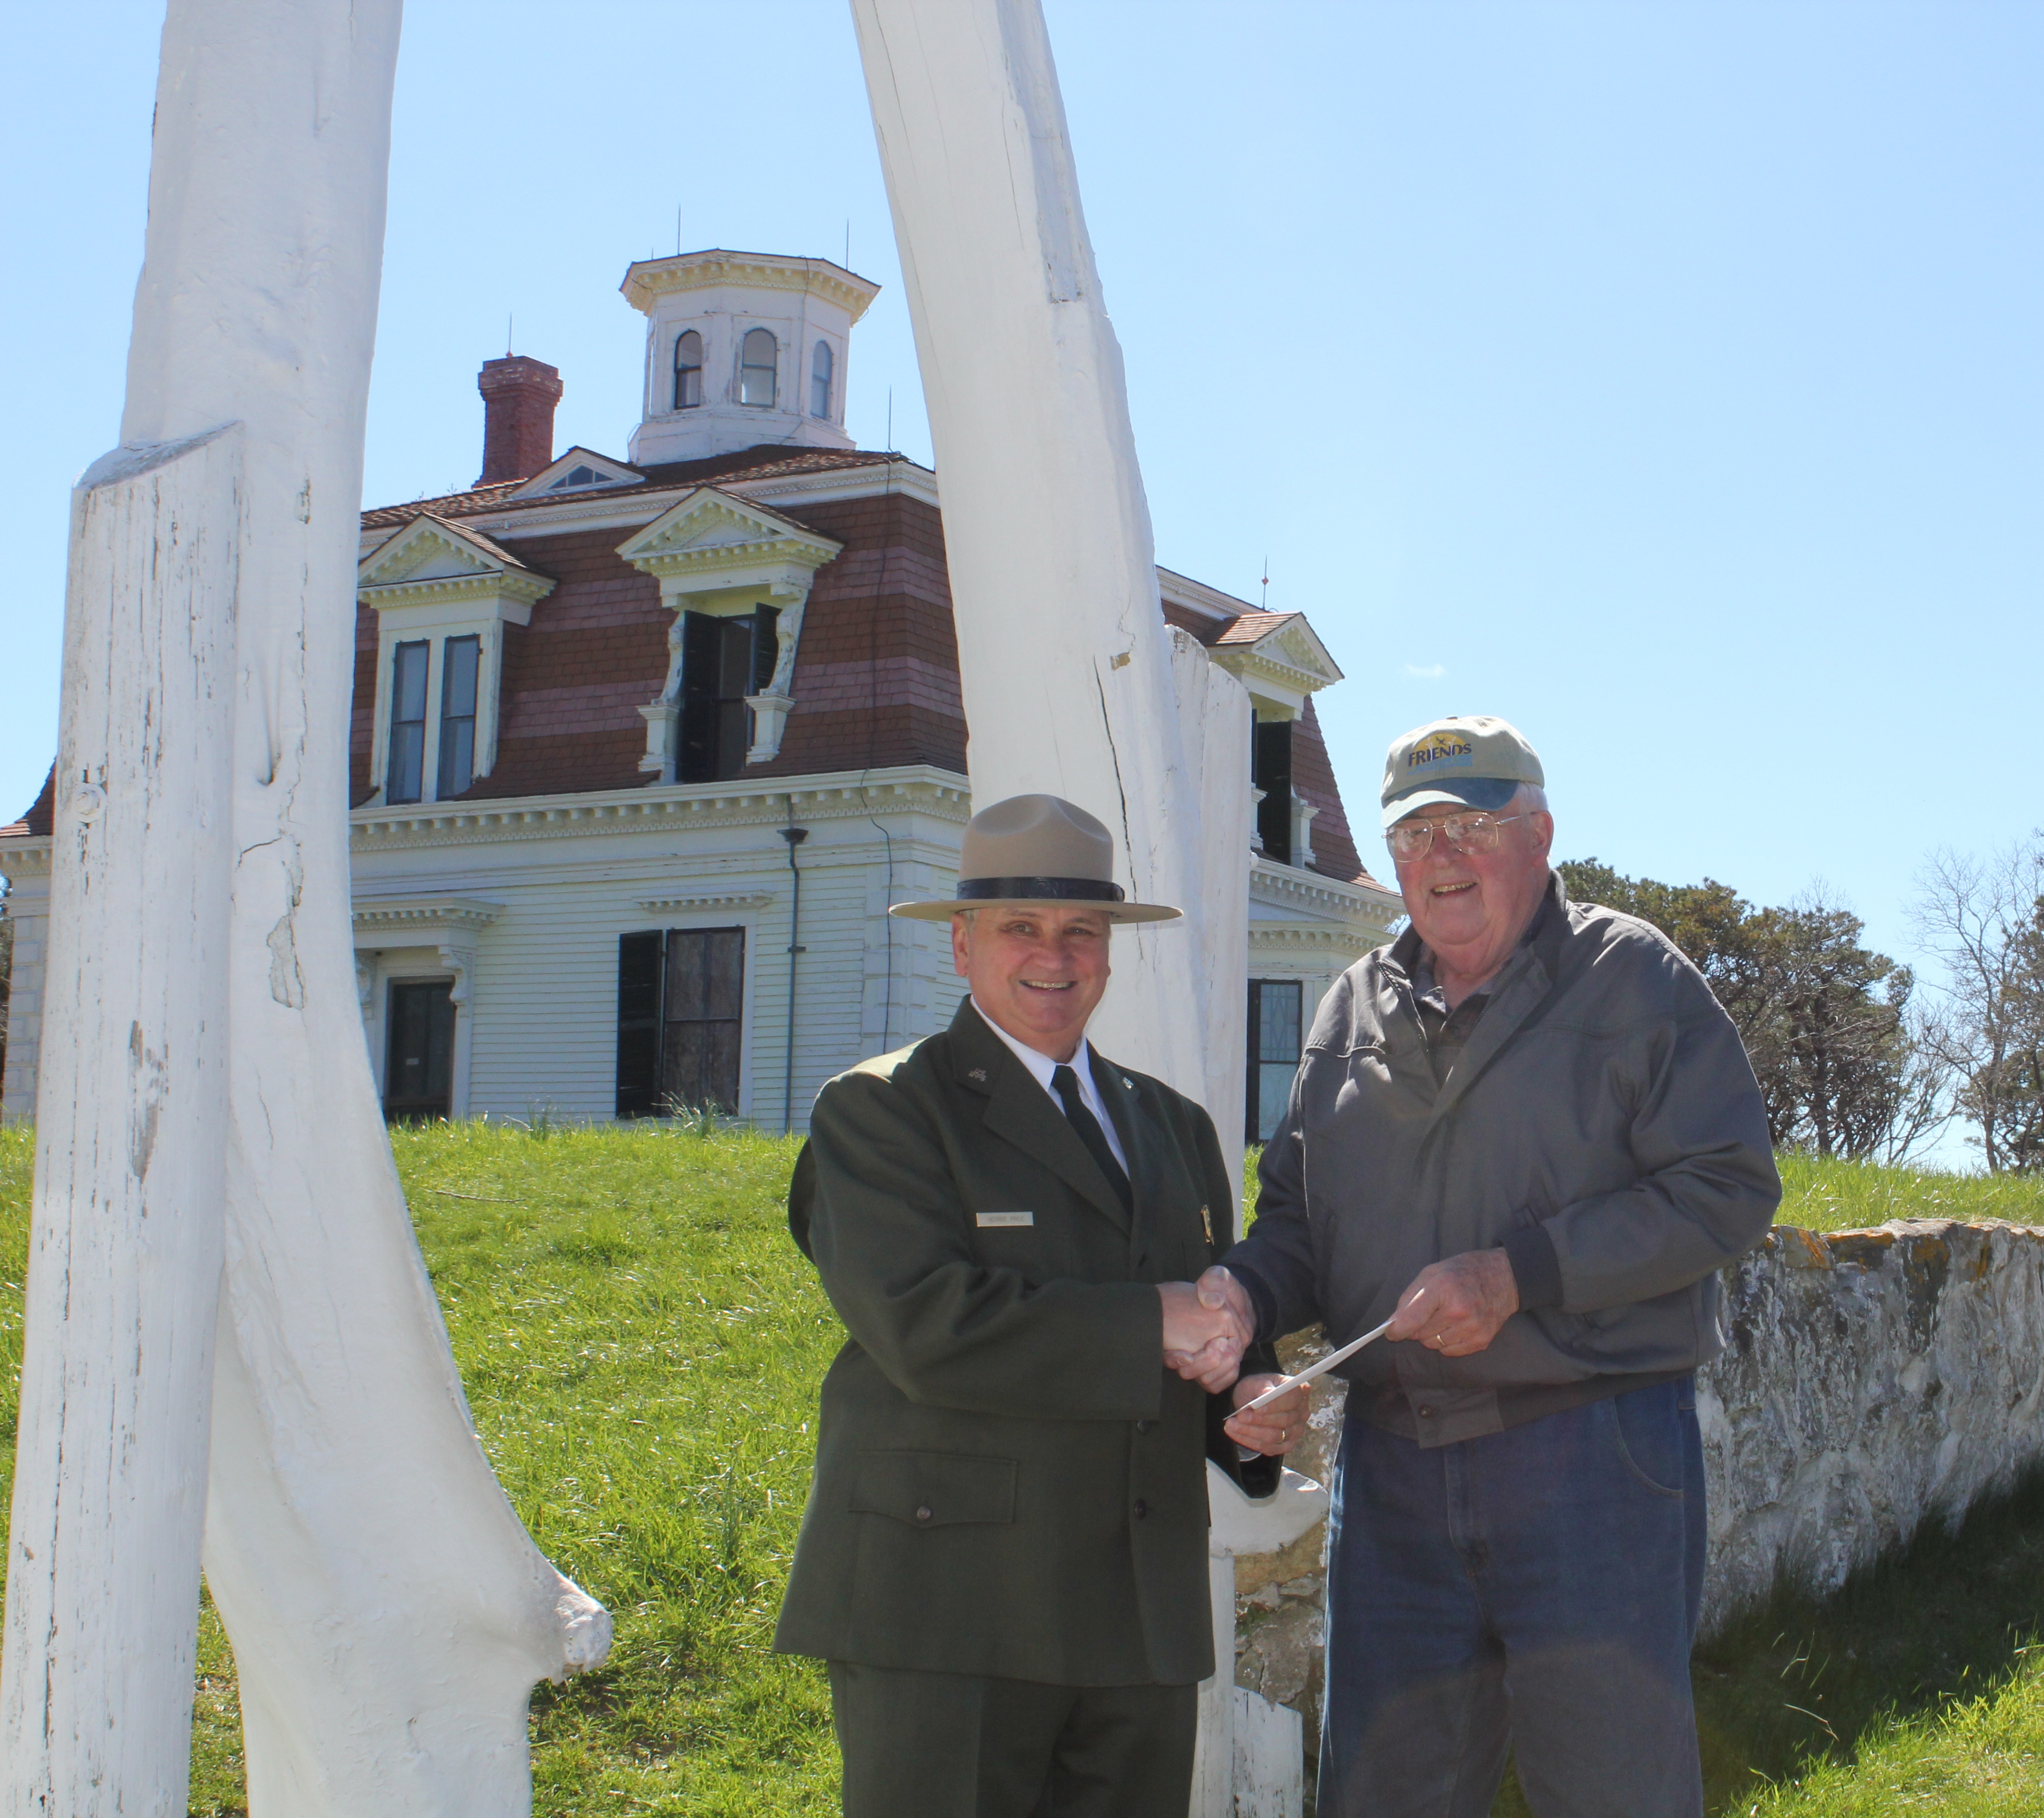 Richard G. Ryder, President of the Friends of Cape Cod National Seashore, hands Superintendent George Price a check for $100,000 as a partner match for the Centennial Challenge funding to repaint the Captain Edward Penniman House.